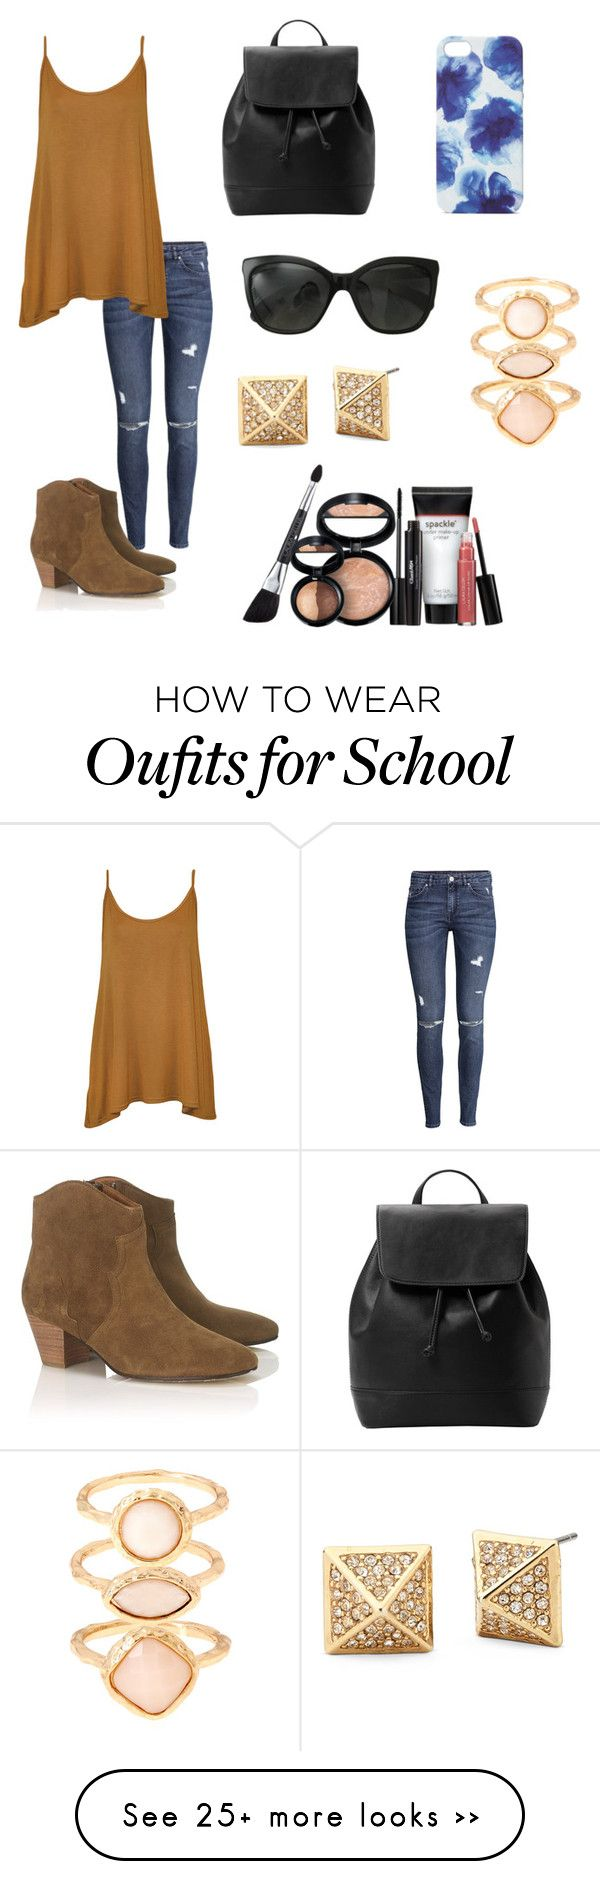 School outfit by hellofashion22 on Polyvore featuring HM, WearAll, Isabel Marant, MANGO, Chanel, Jigsaw, Monsoon and Laura Geller